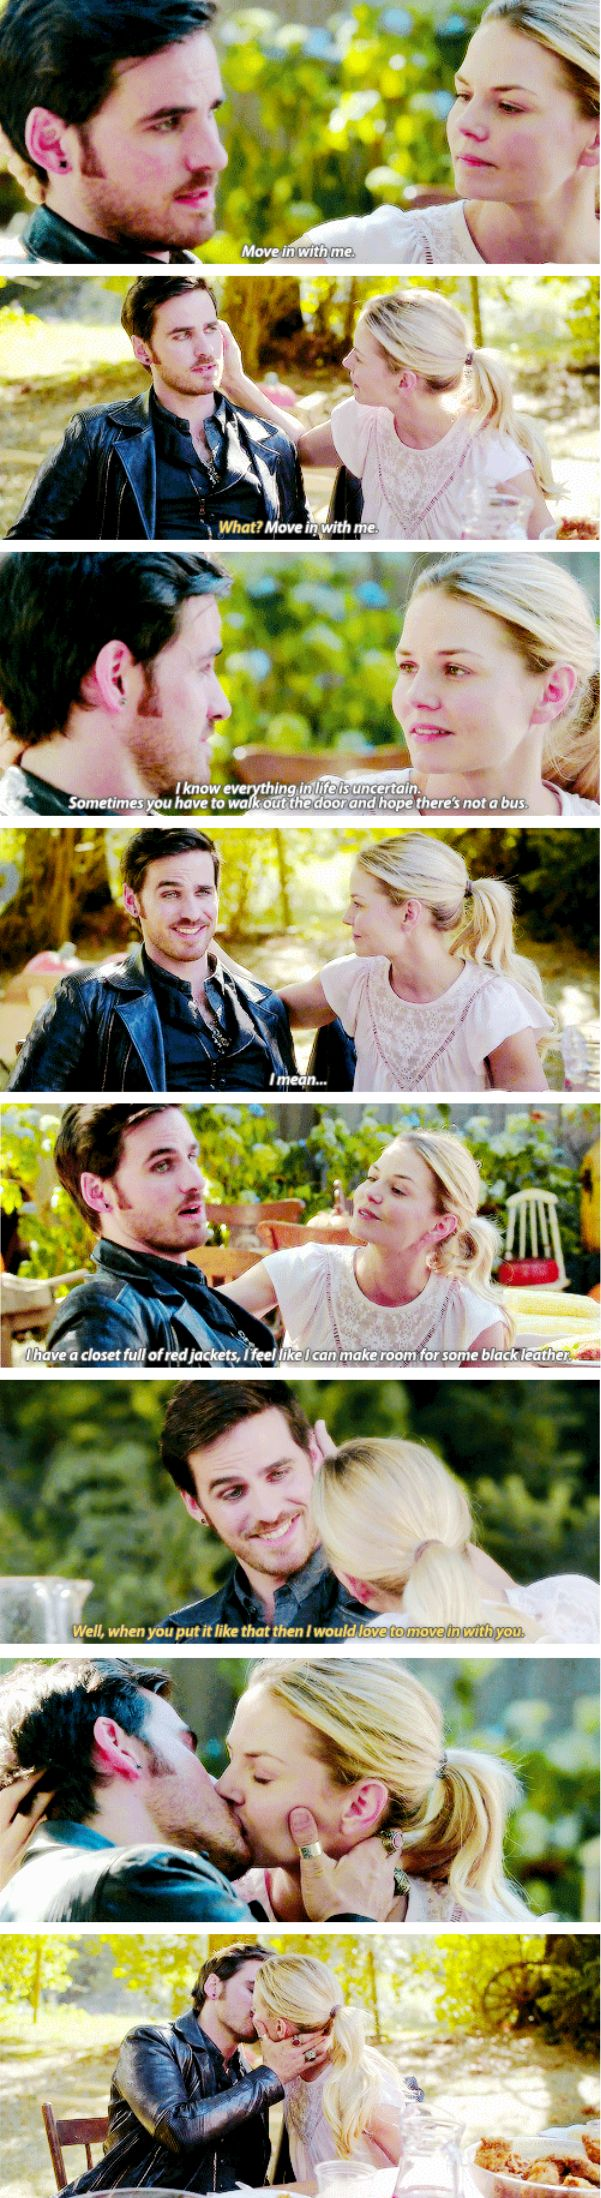 "Emma Swan and Killian Jones - 6 * 3 ""The Other Shoe"" #CaptainSwan"